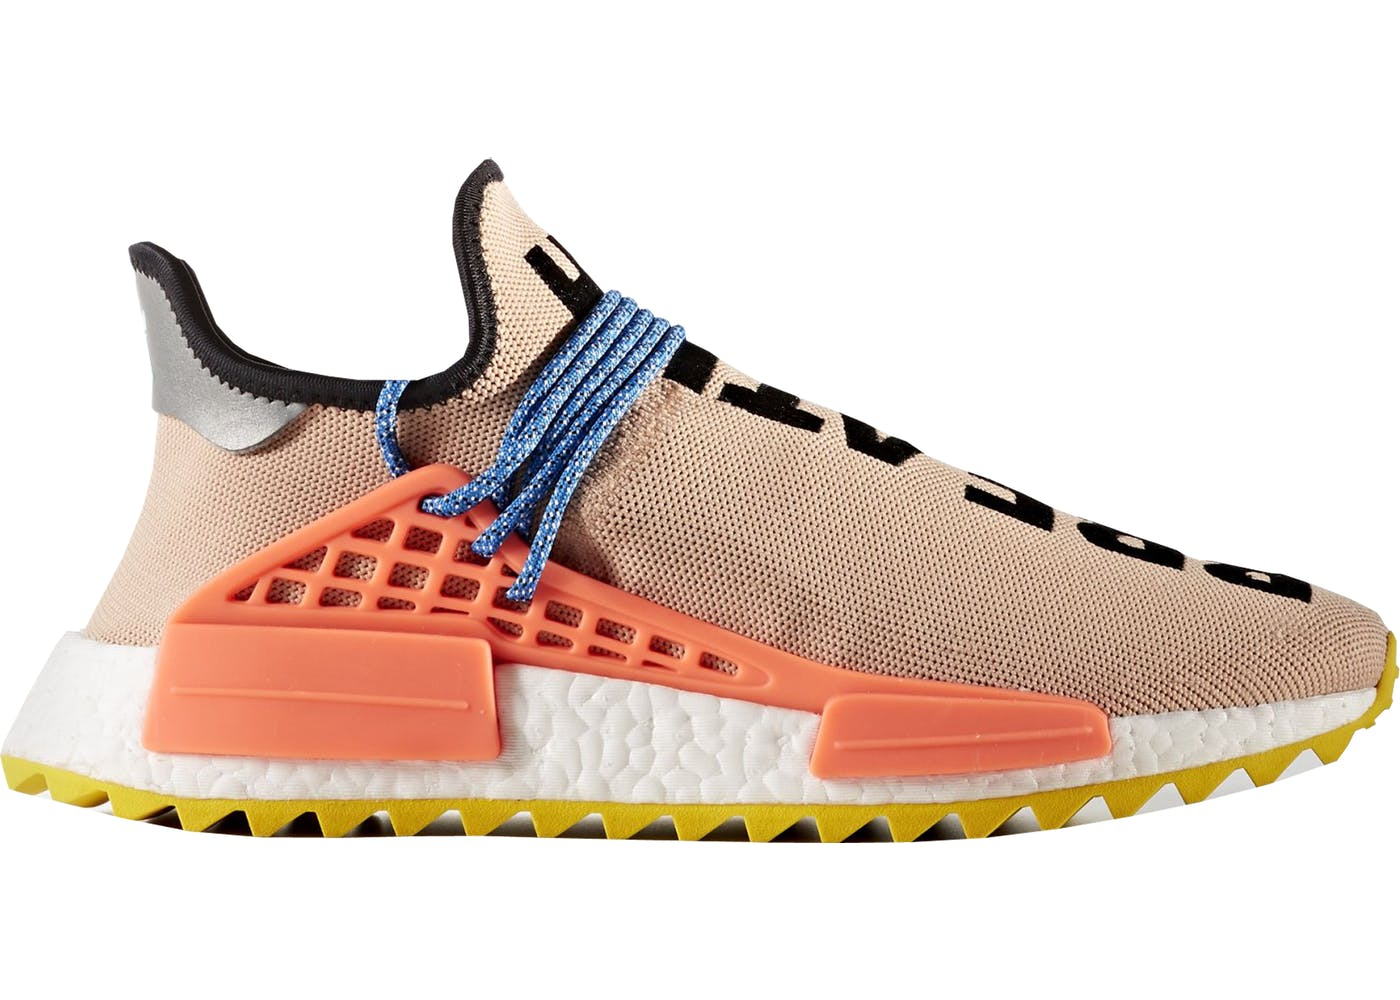 Adidas x Pharrell Williams Hu Human Race NMD (Yellow) End